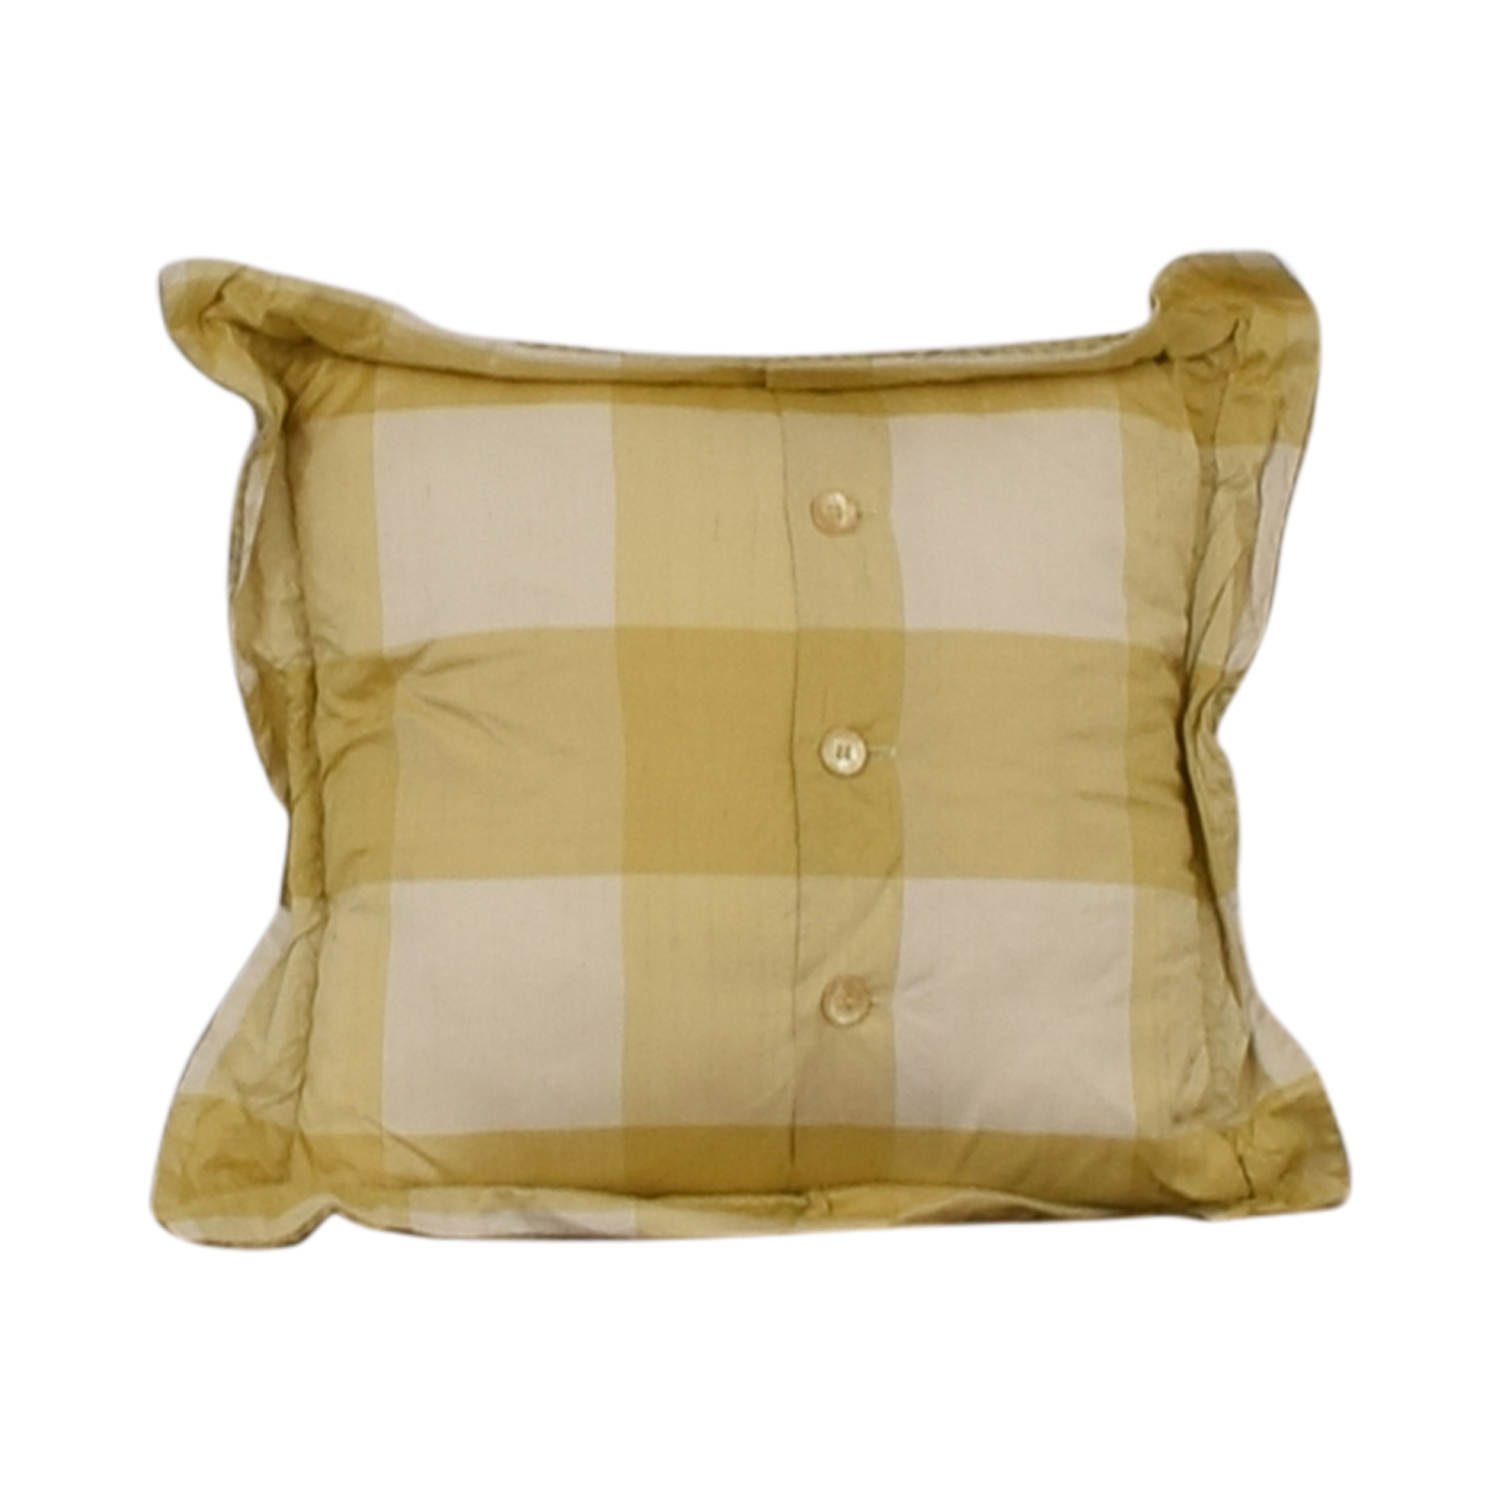 Custom Gold and White Decorative Pillow dimensions